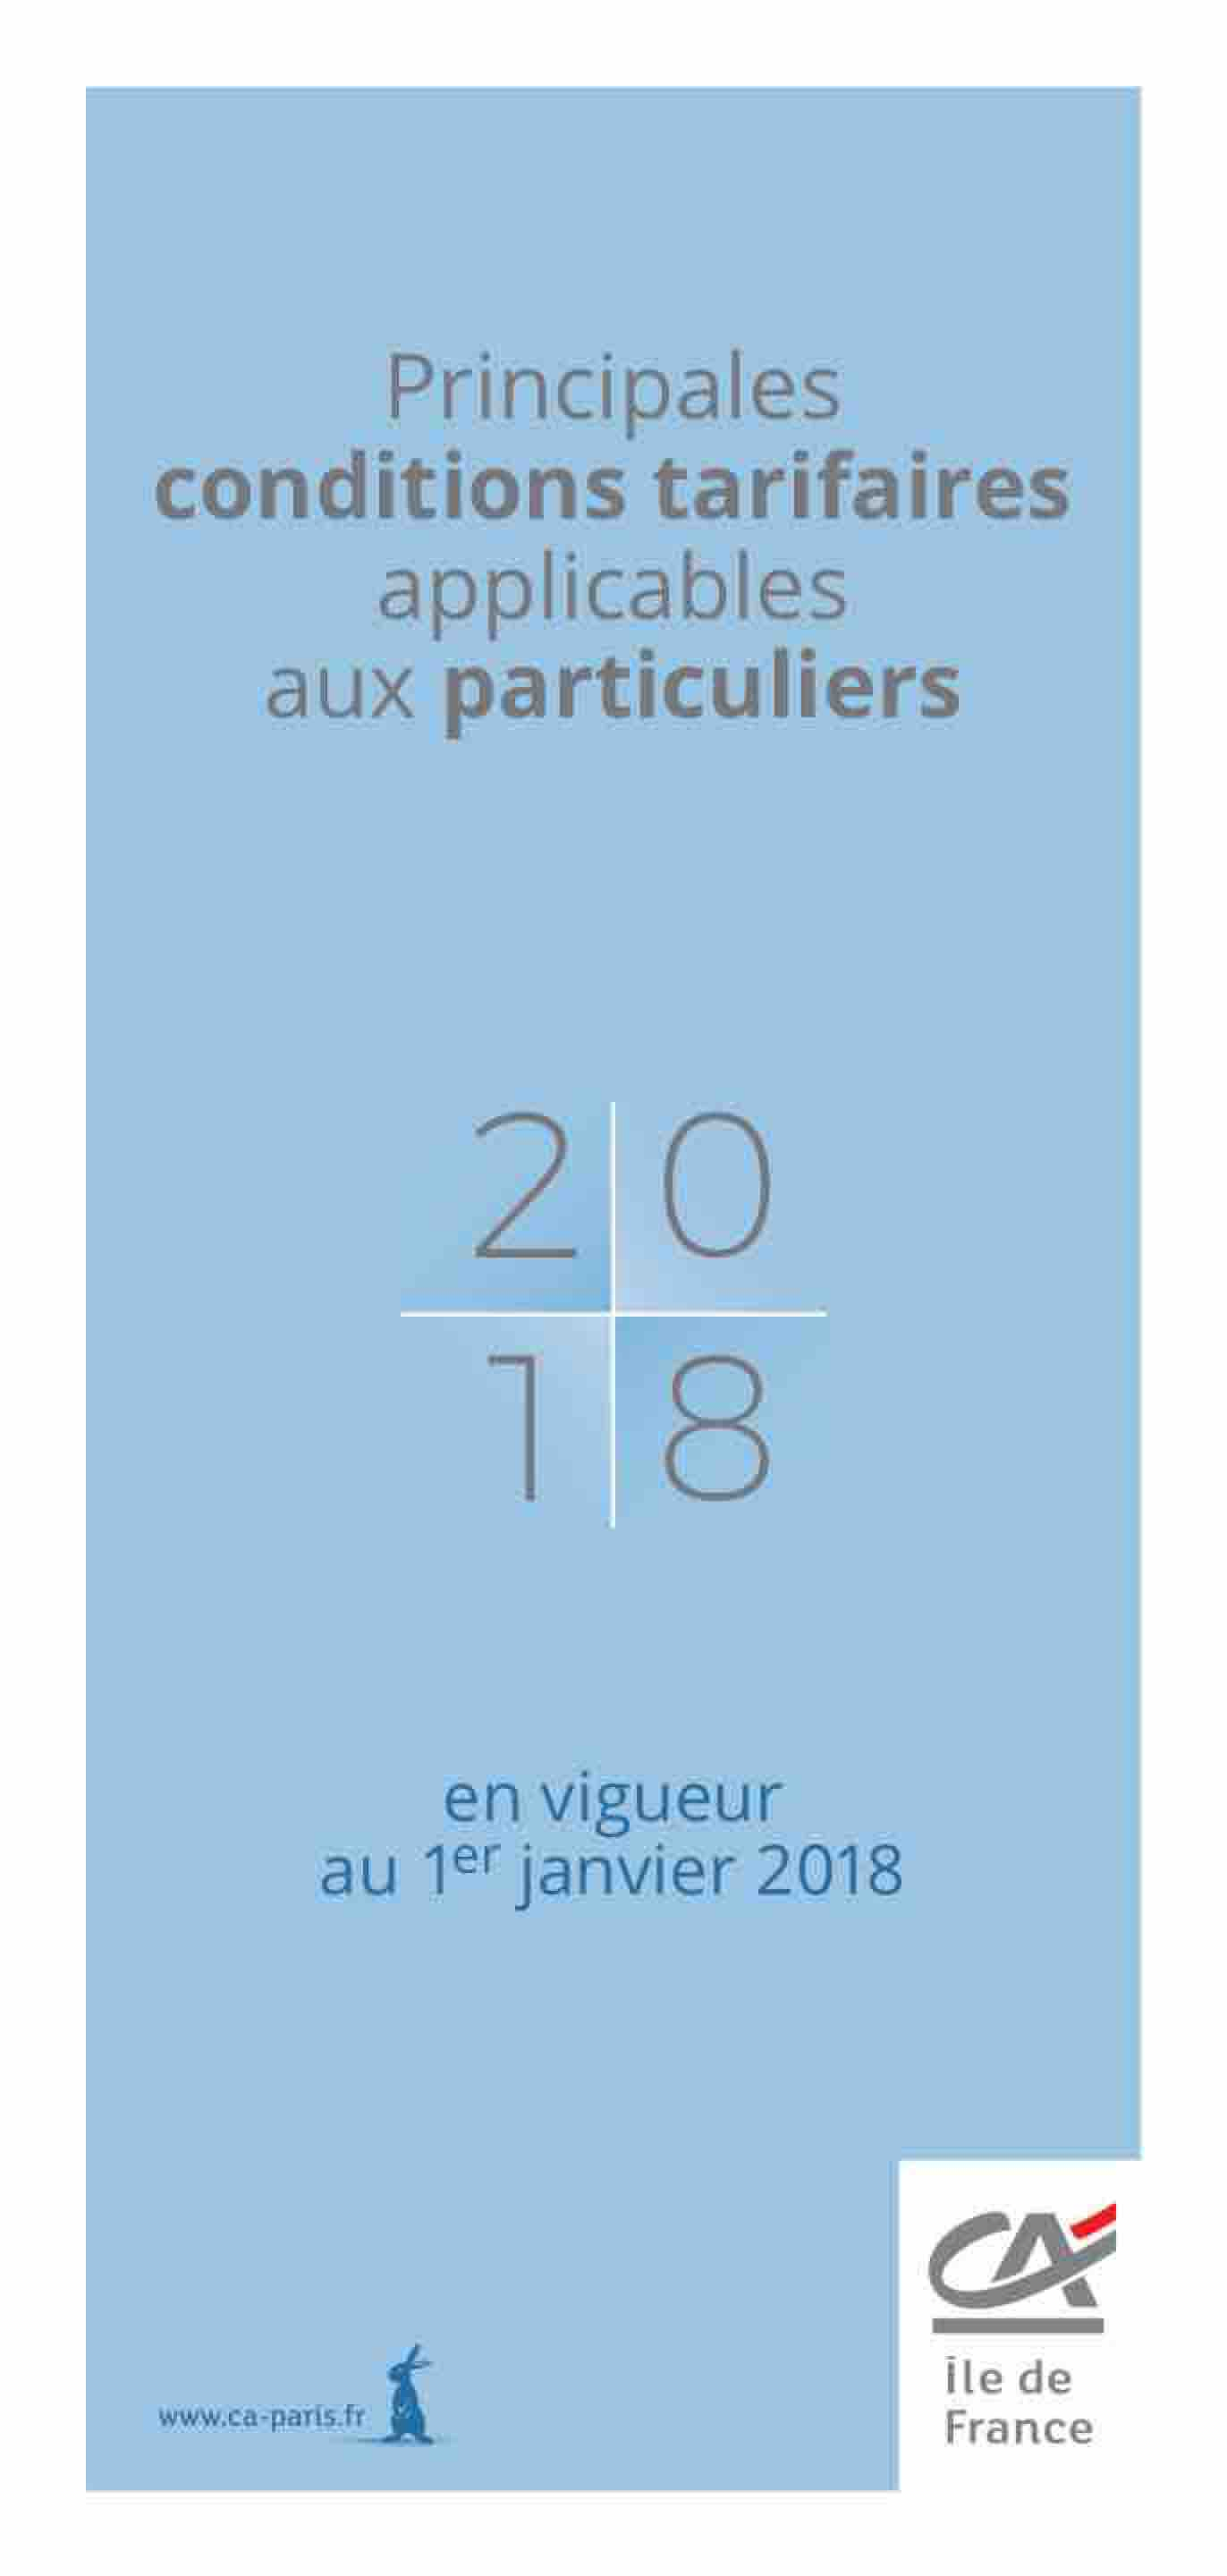 Tarifications particuliers 2018